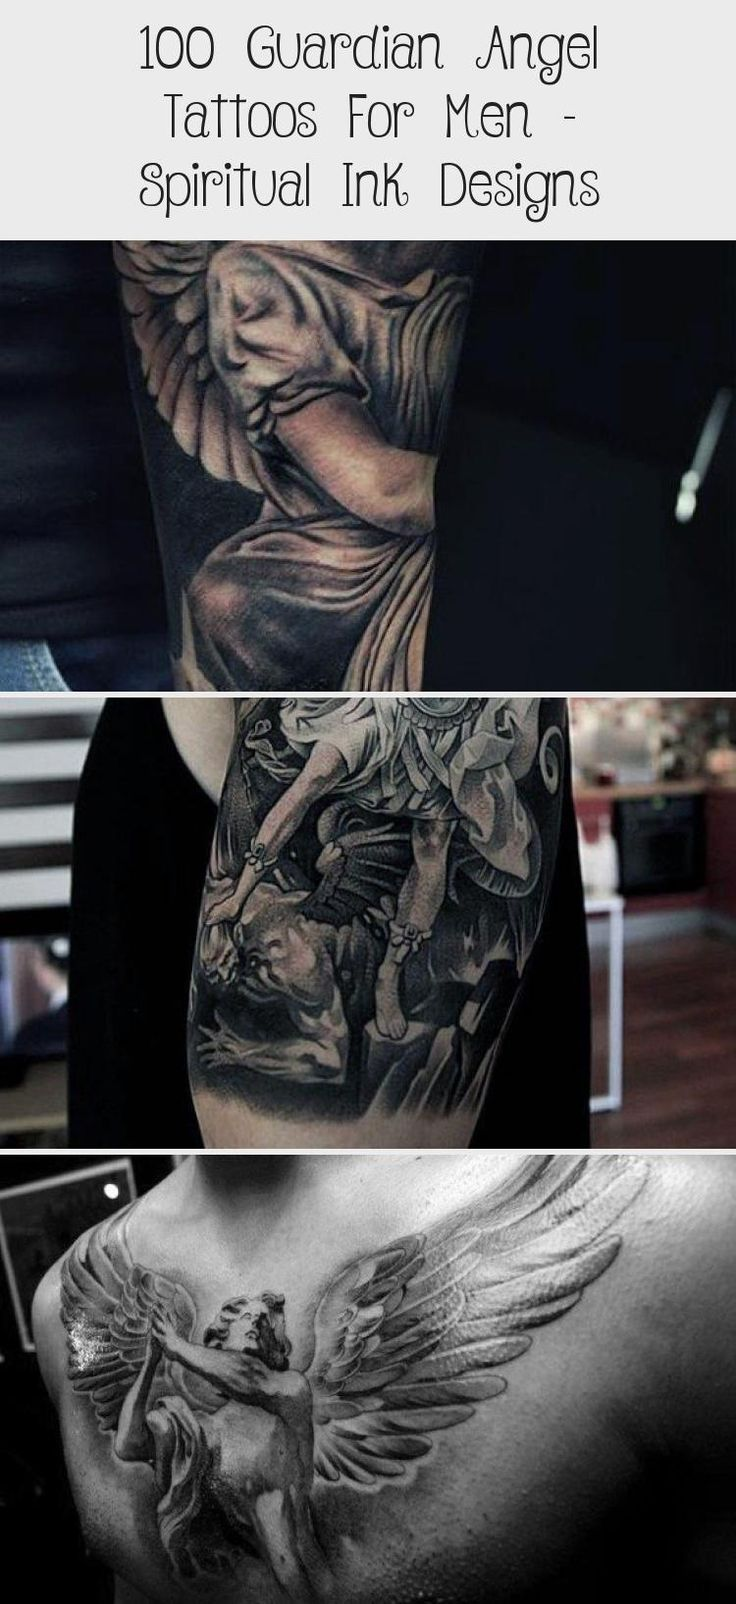 40+ Awesome Angel tattoo designs for guys ideas